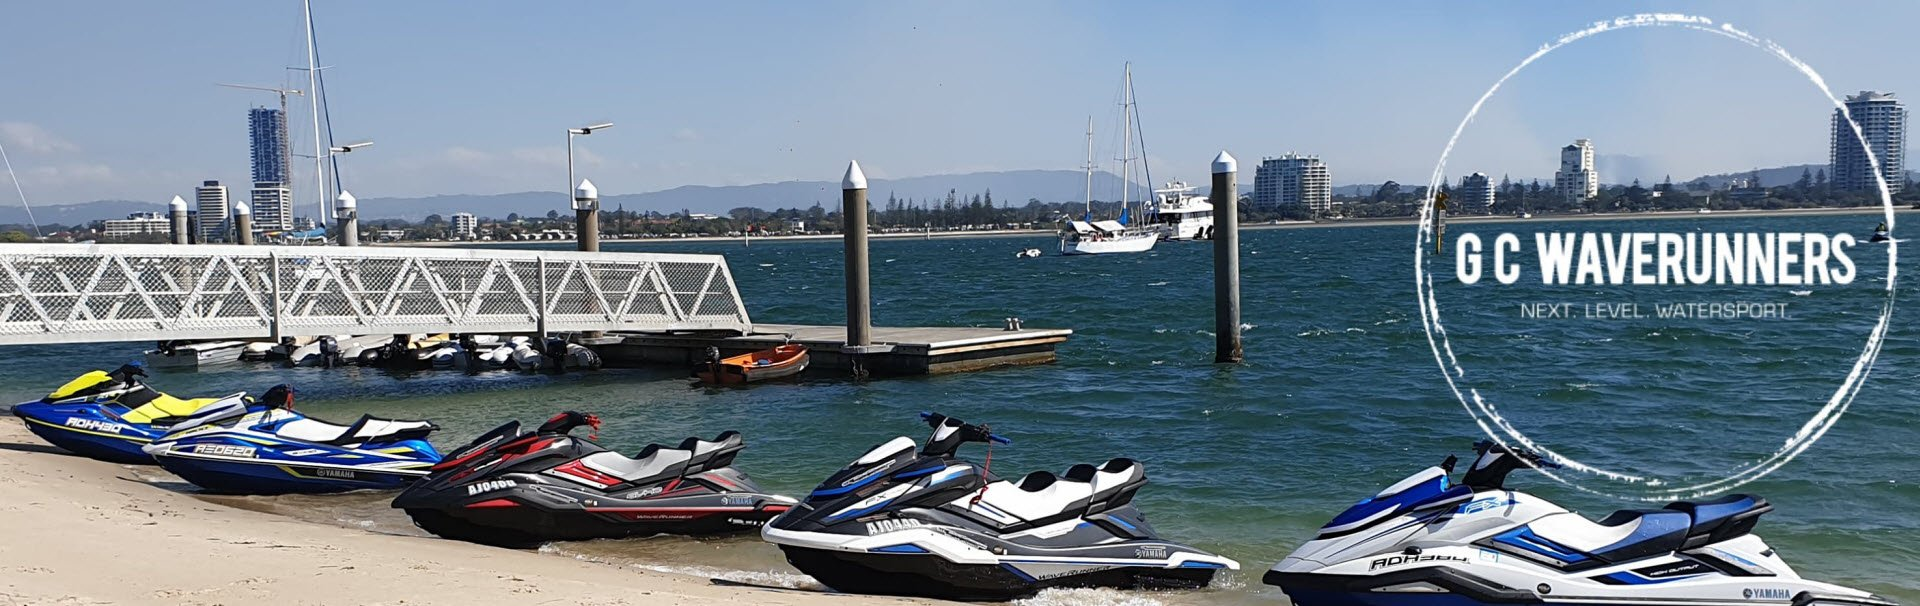 Gold Coast Waverunners 07 5529 1855 No.1 Yamaha Waverunner Dealer.